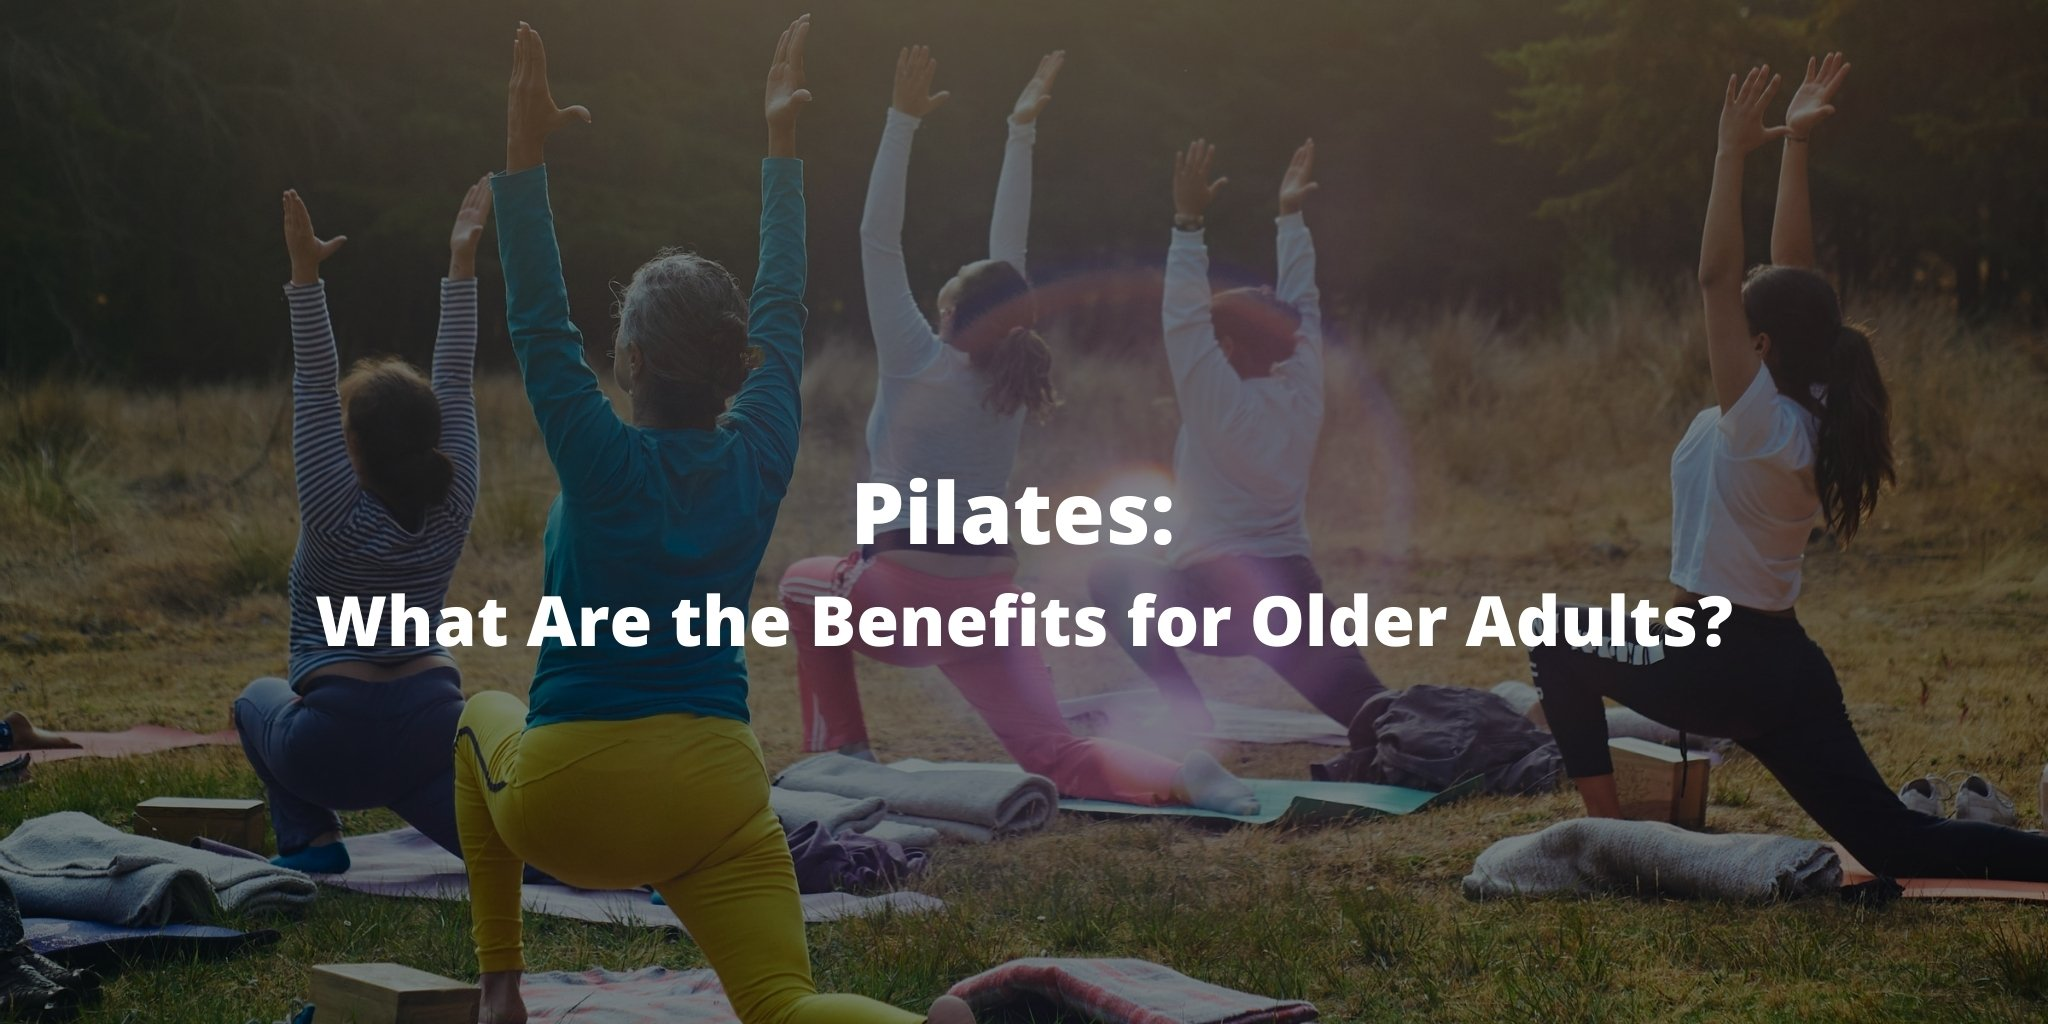 Pilates: What Are the Benefits for Older Adults?